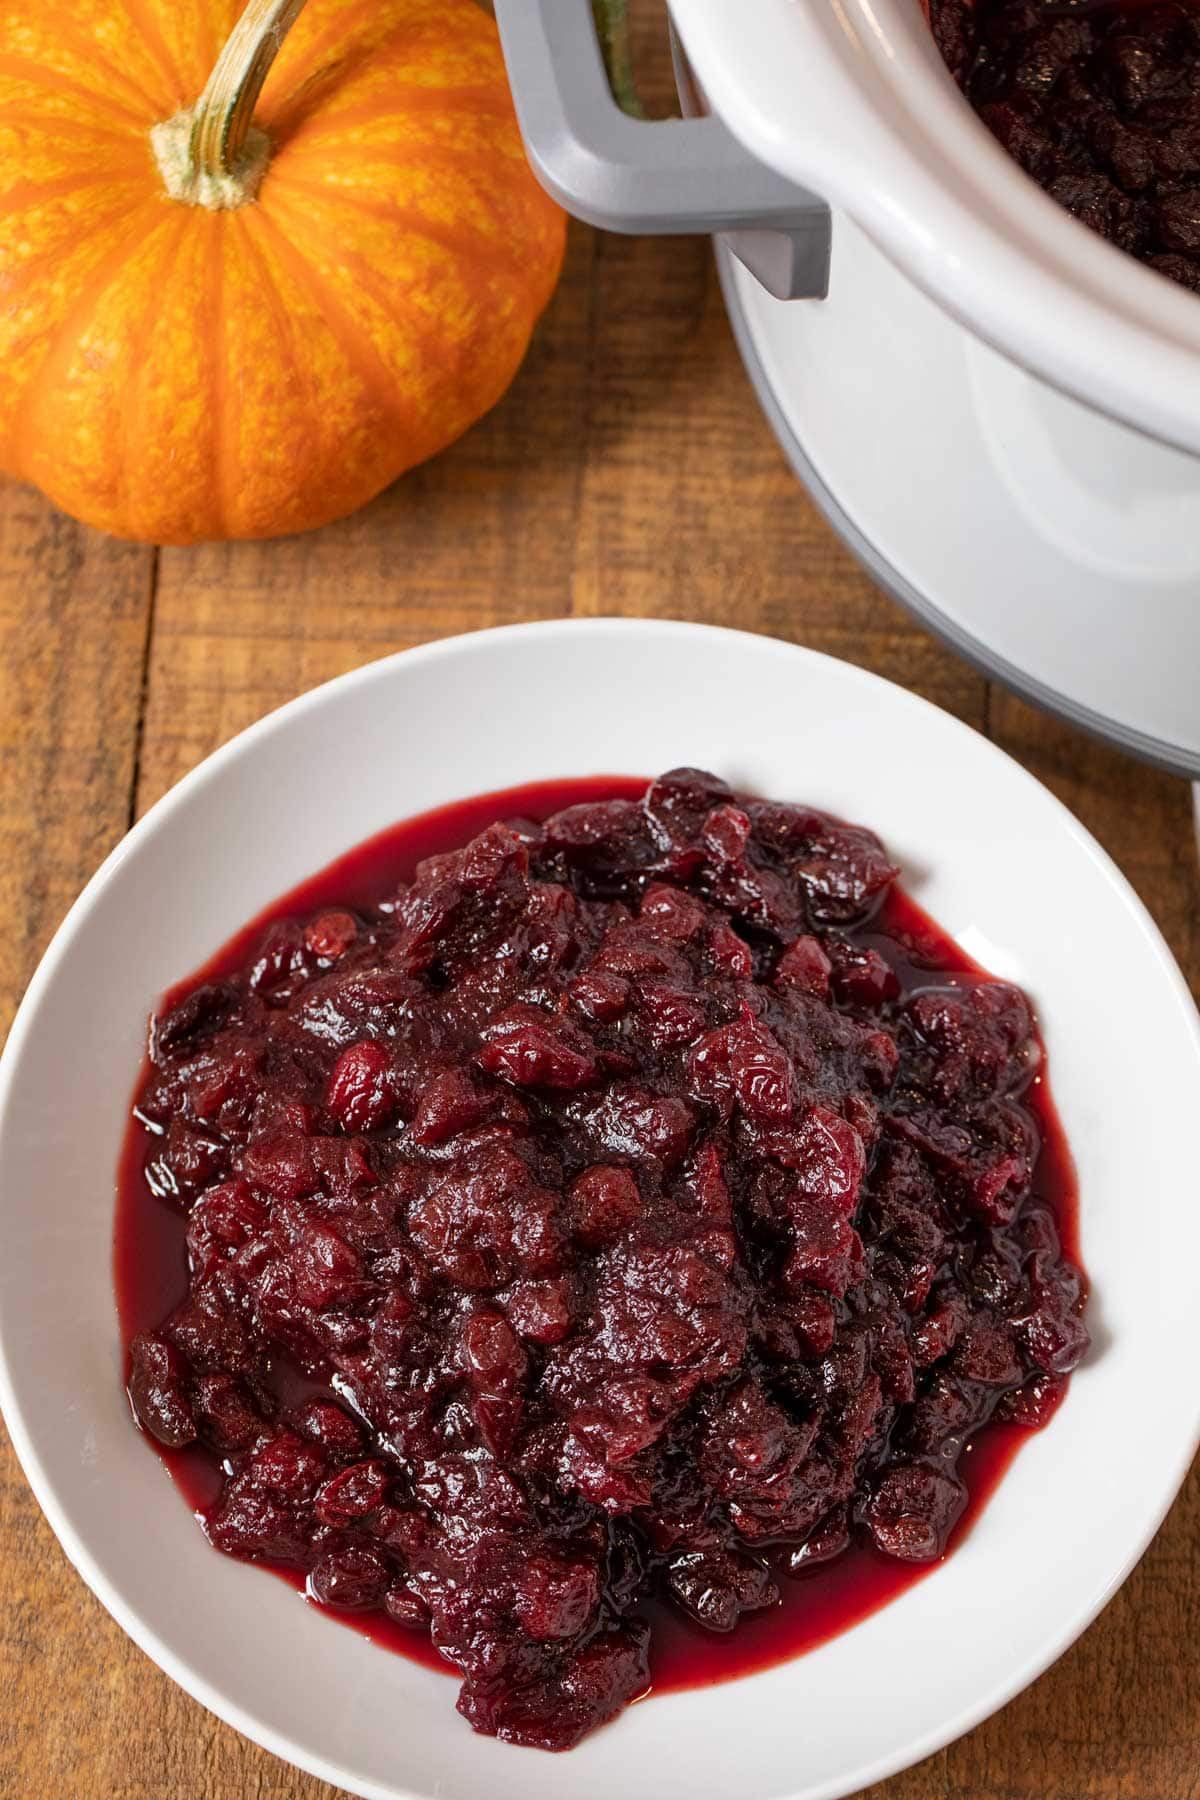 Slow Cooker Cranberry Sauce in serving bowl